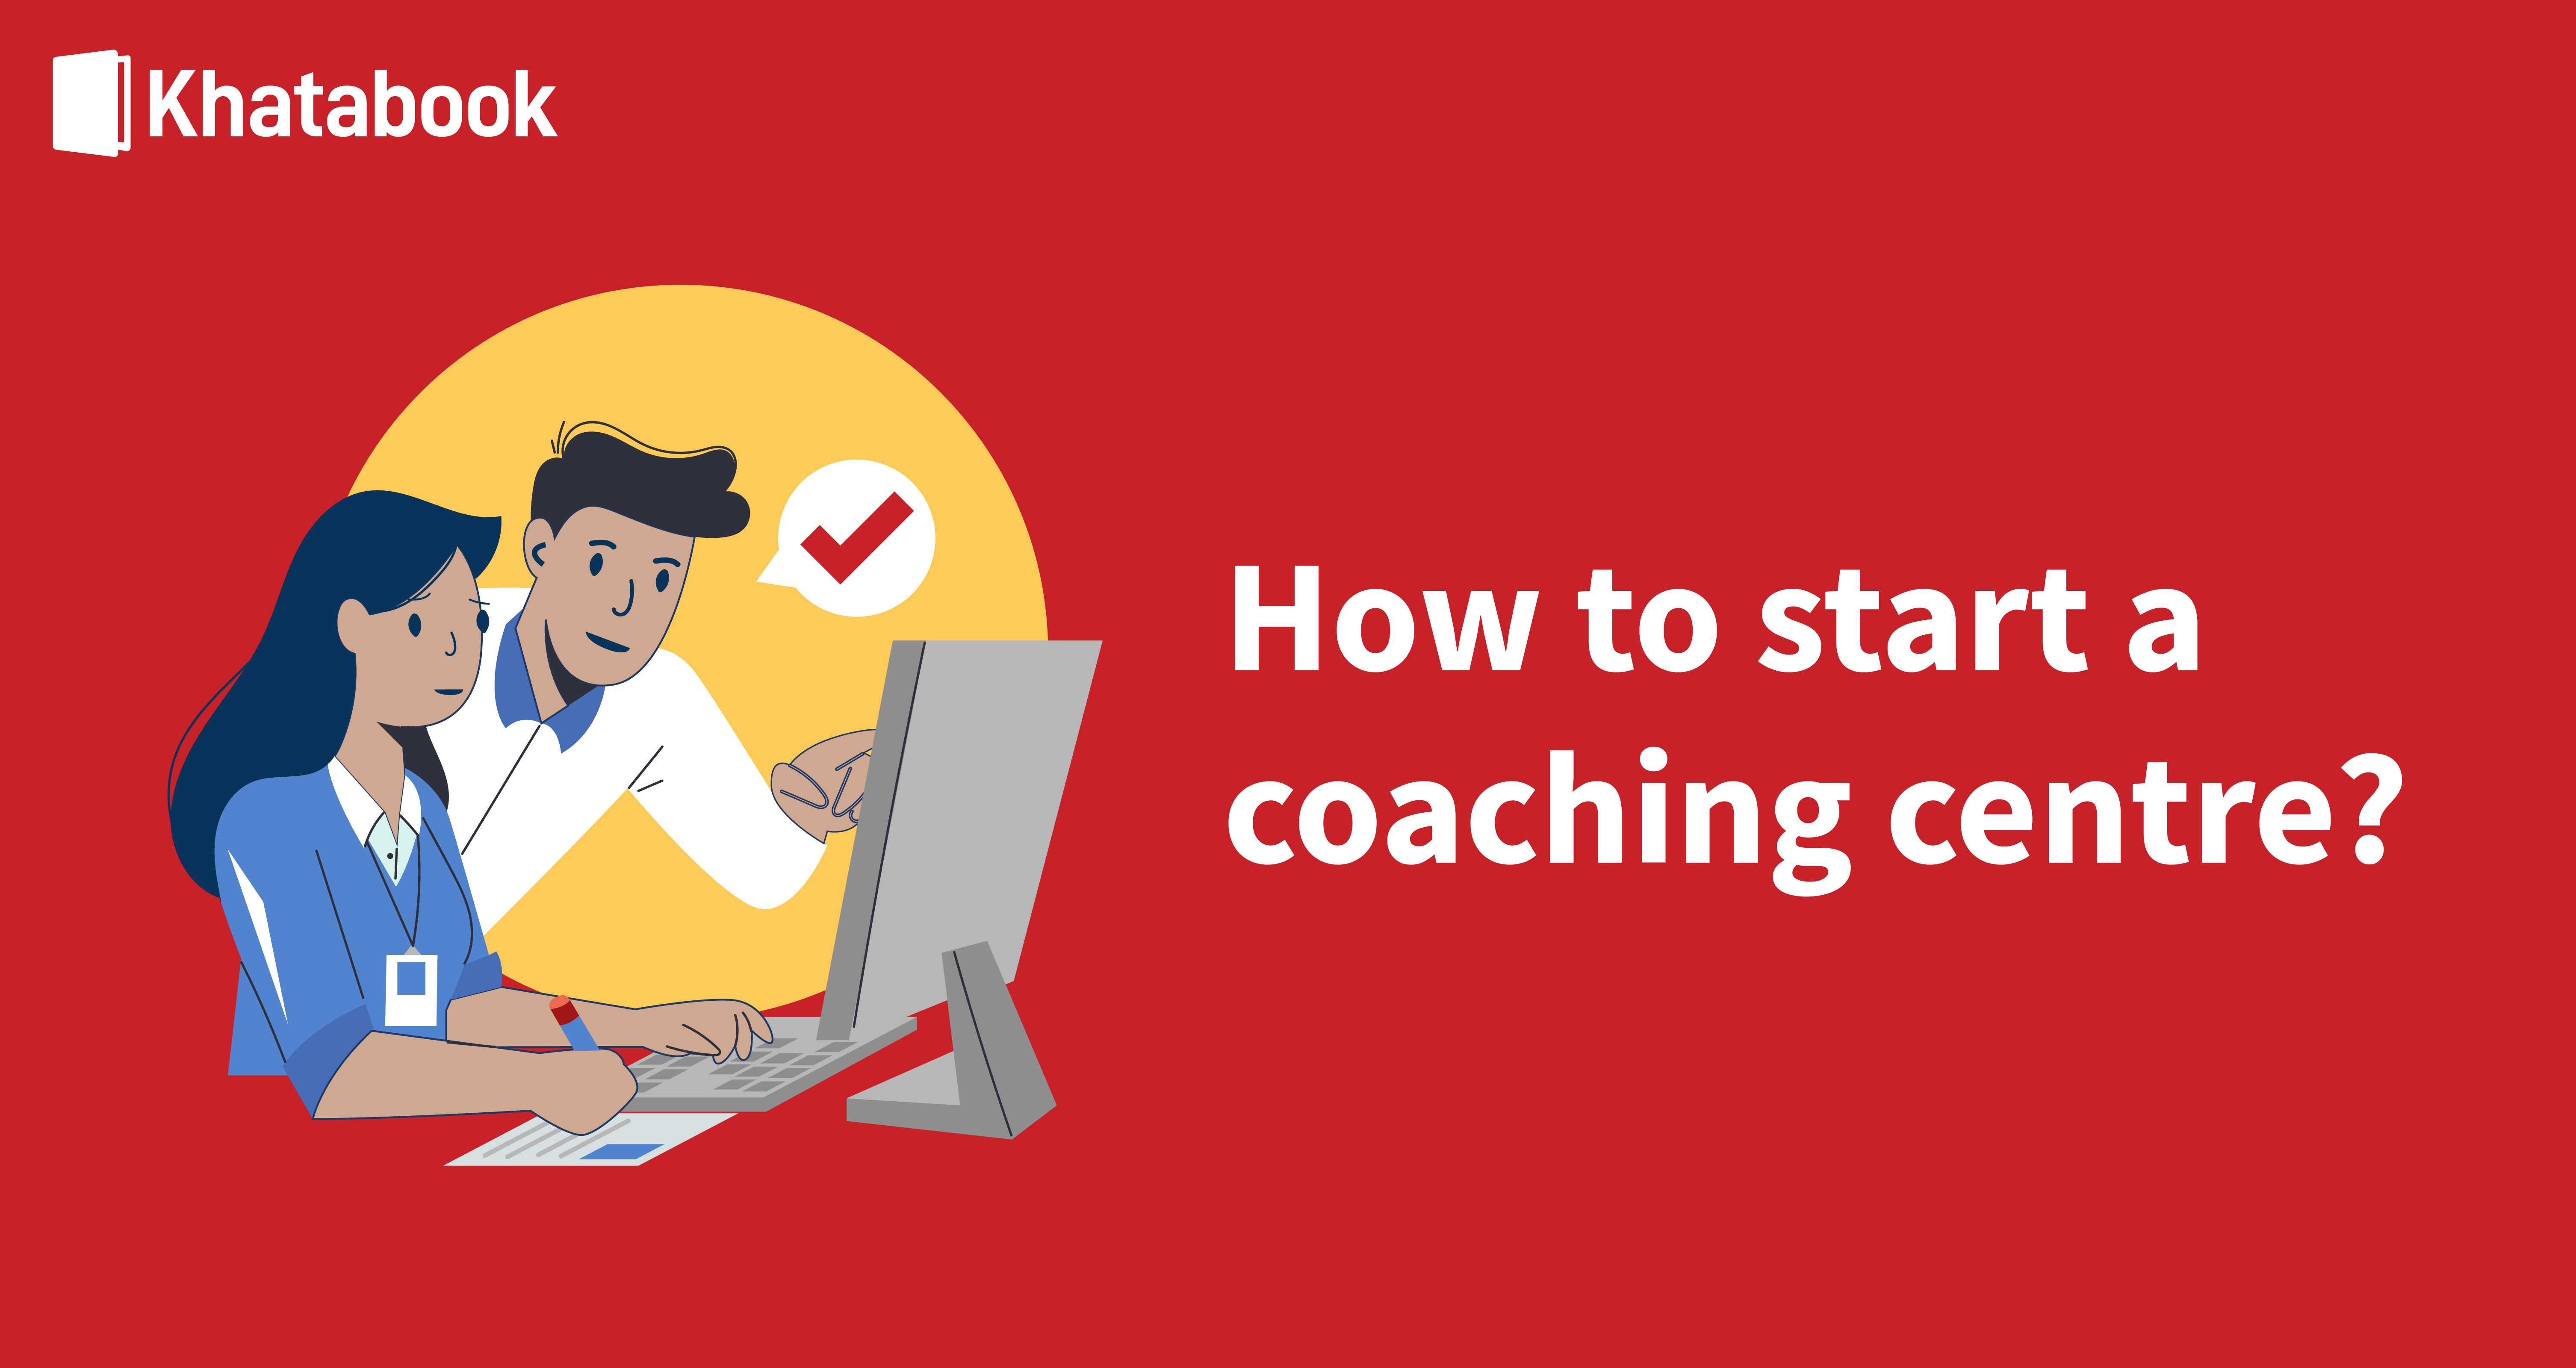 Guide To Starting A Coaching Centre